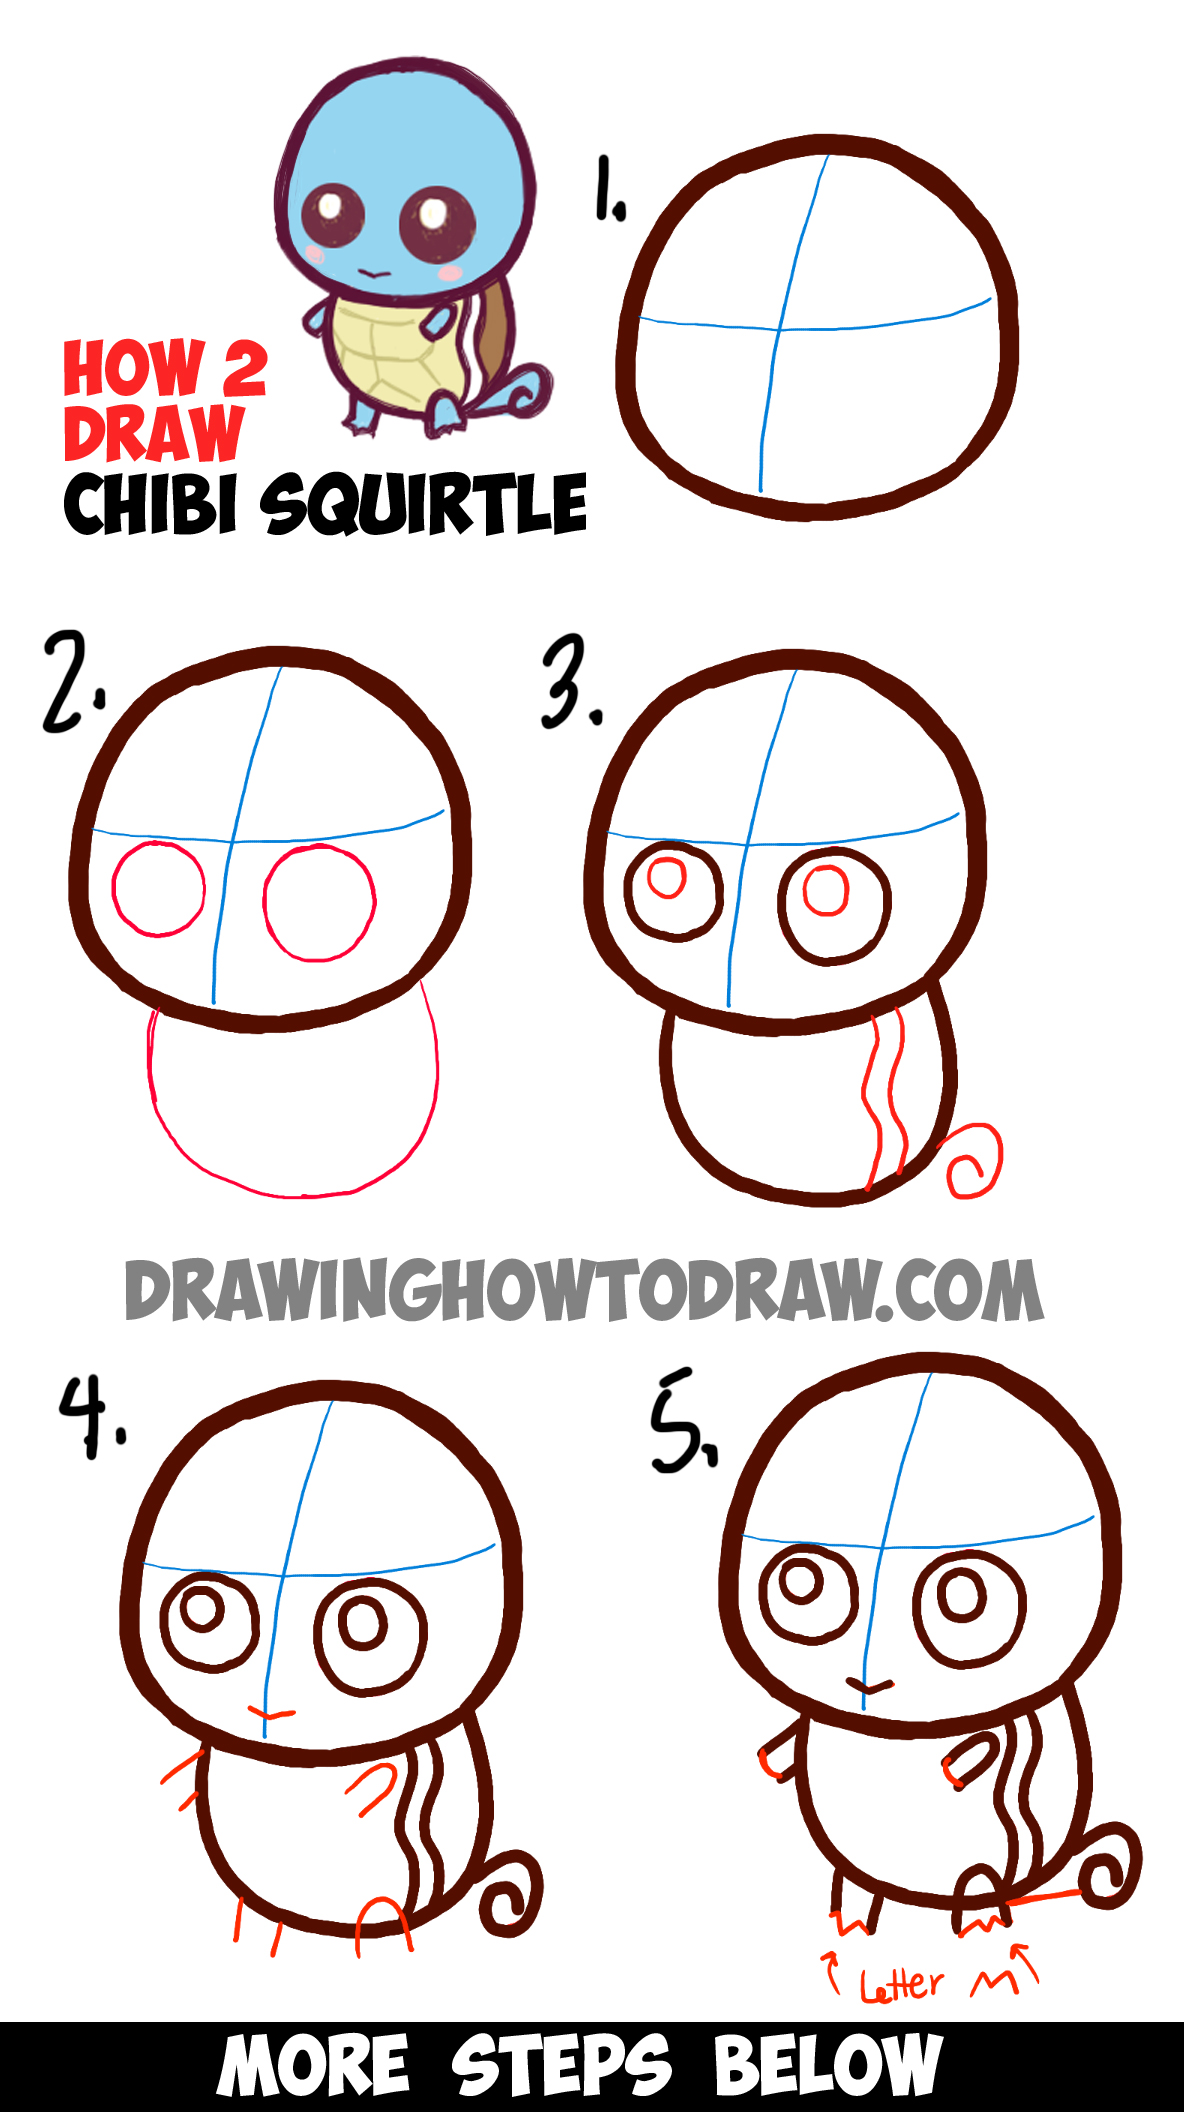 how to draw cute baby chibi squirtle from pokemon easy